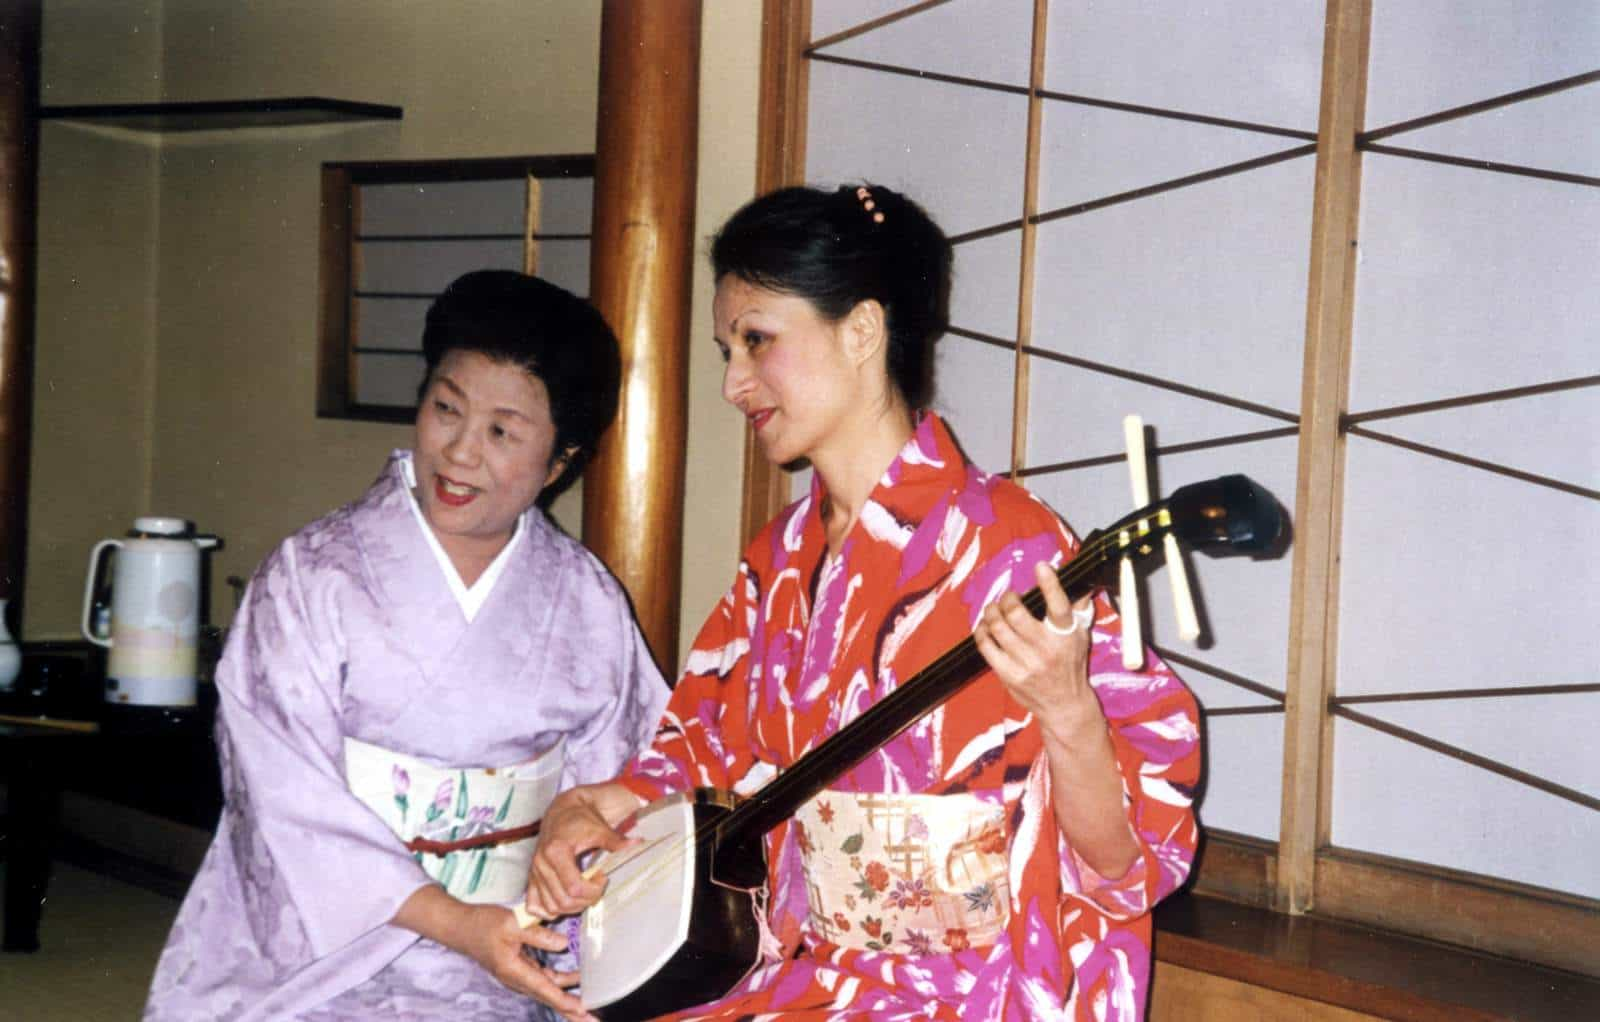 Me as a geisha - playing the shamisen